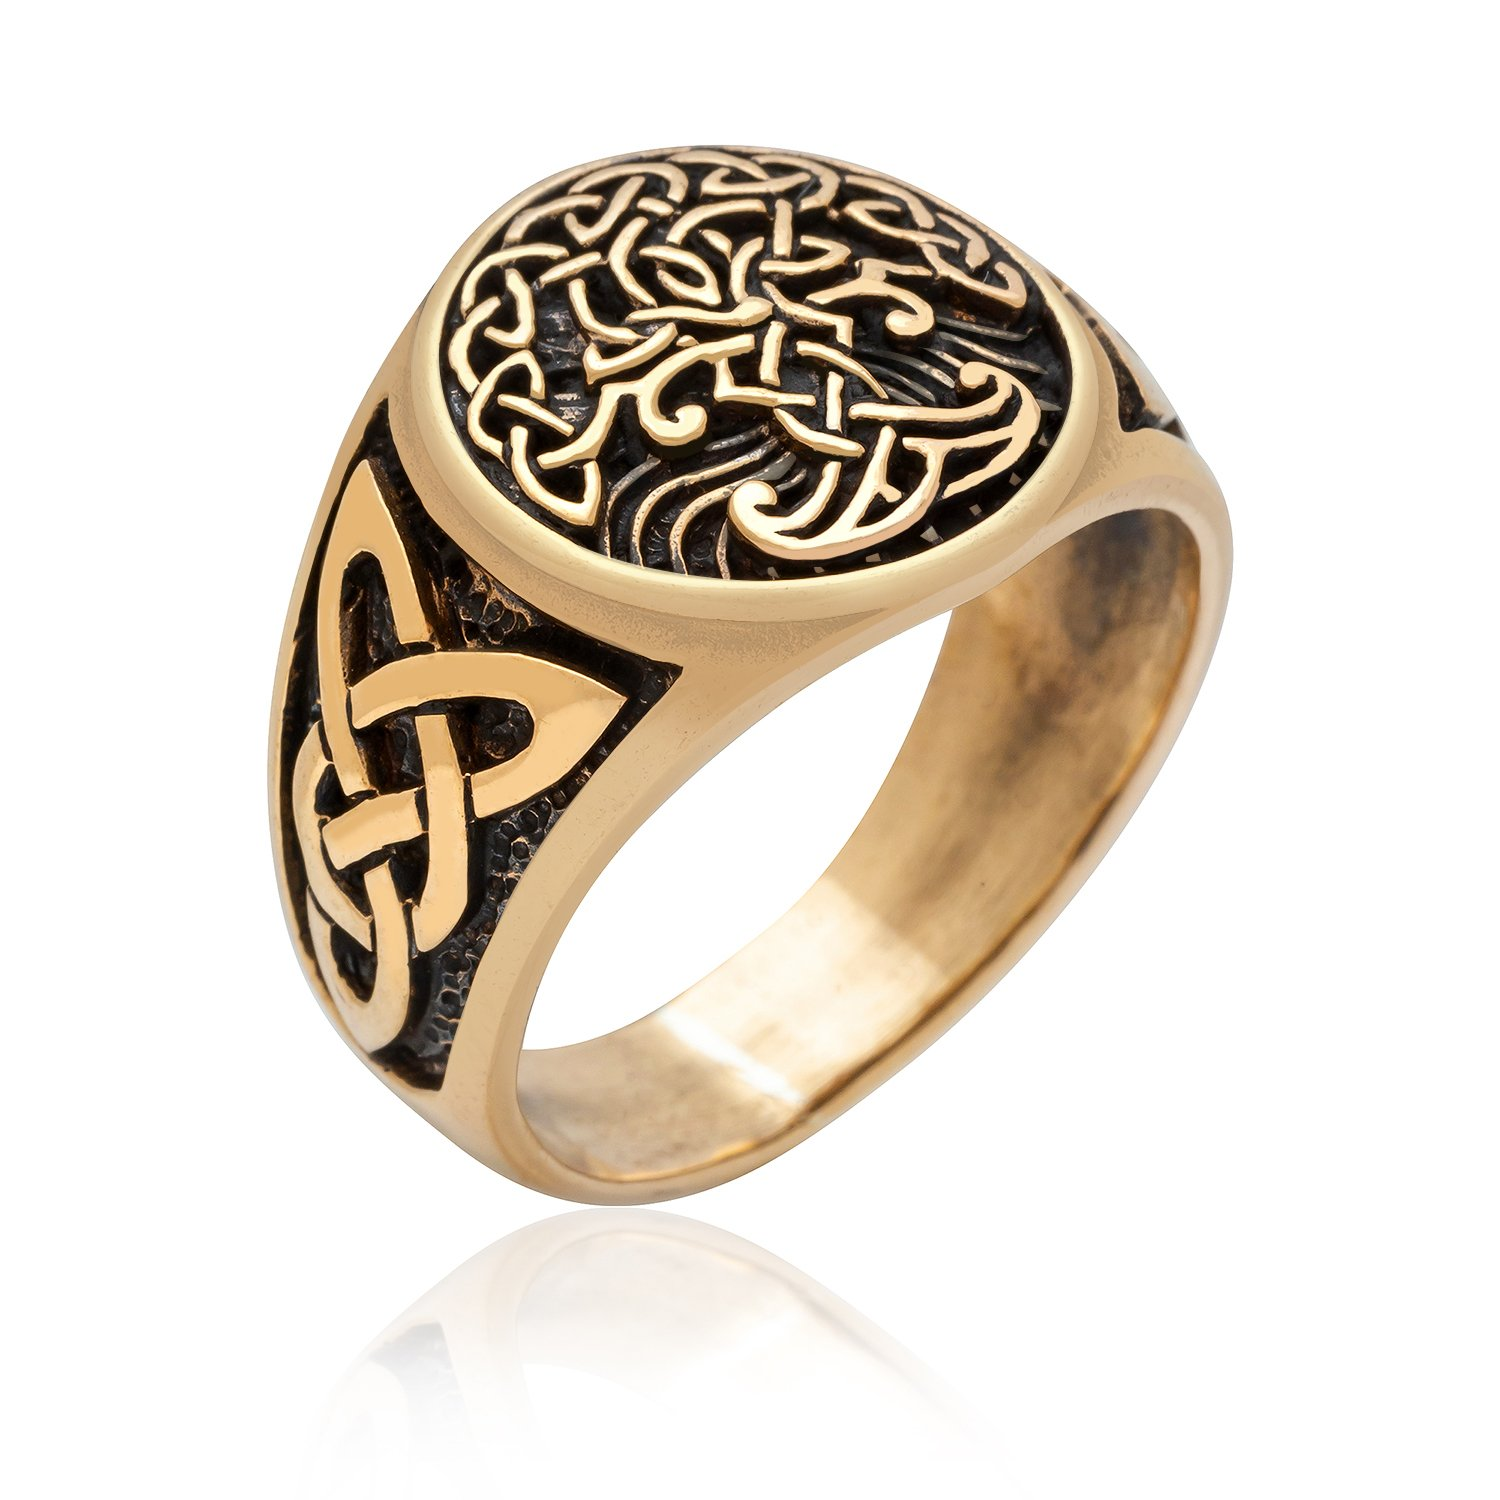 Bronze Viking Tree of Life Yggdrasil Celtic Knotwork Pagan Handcrafted Ring